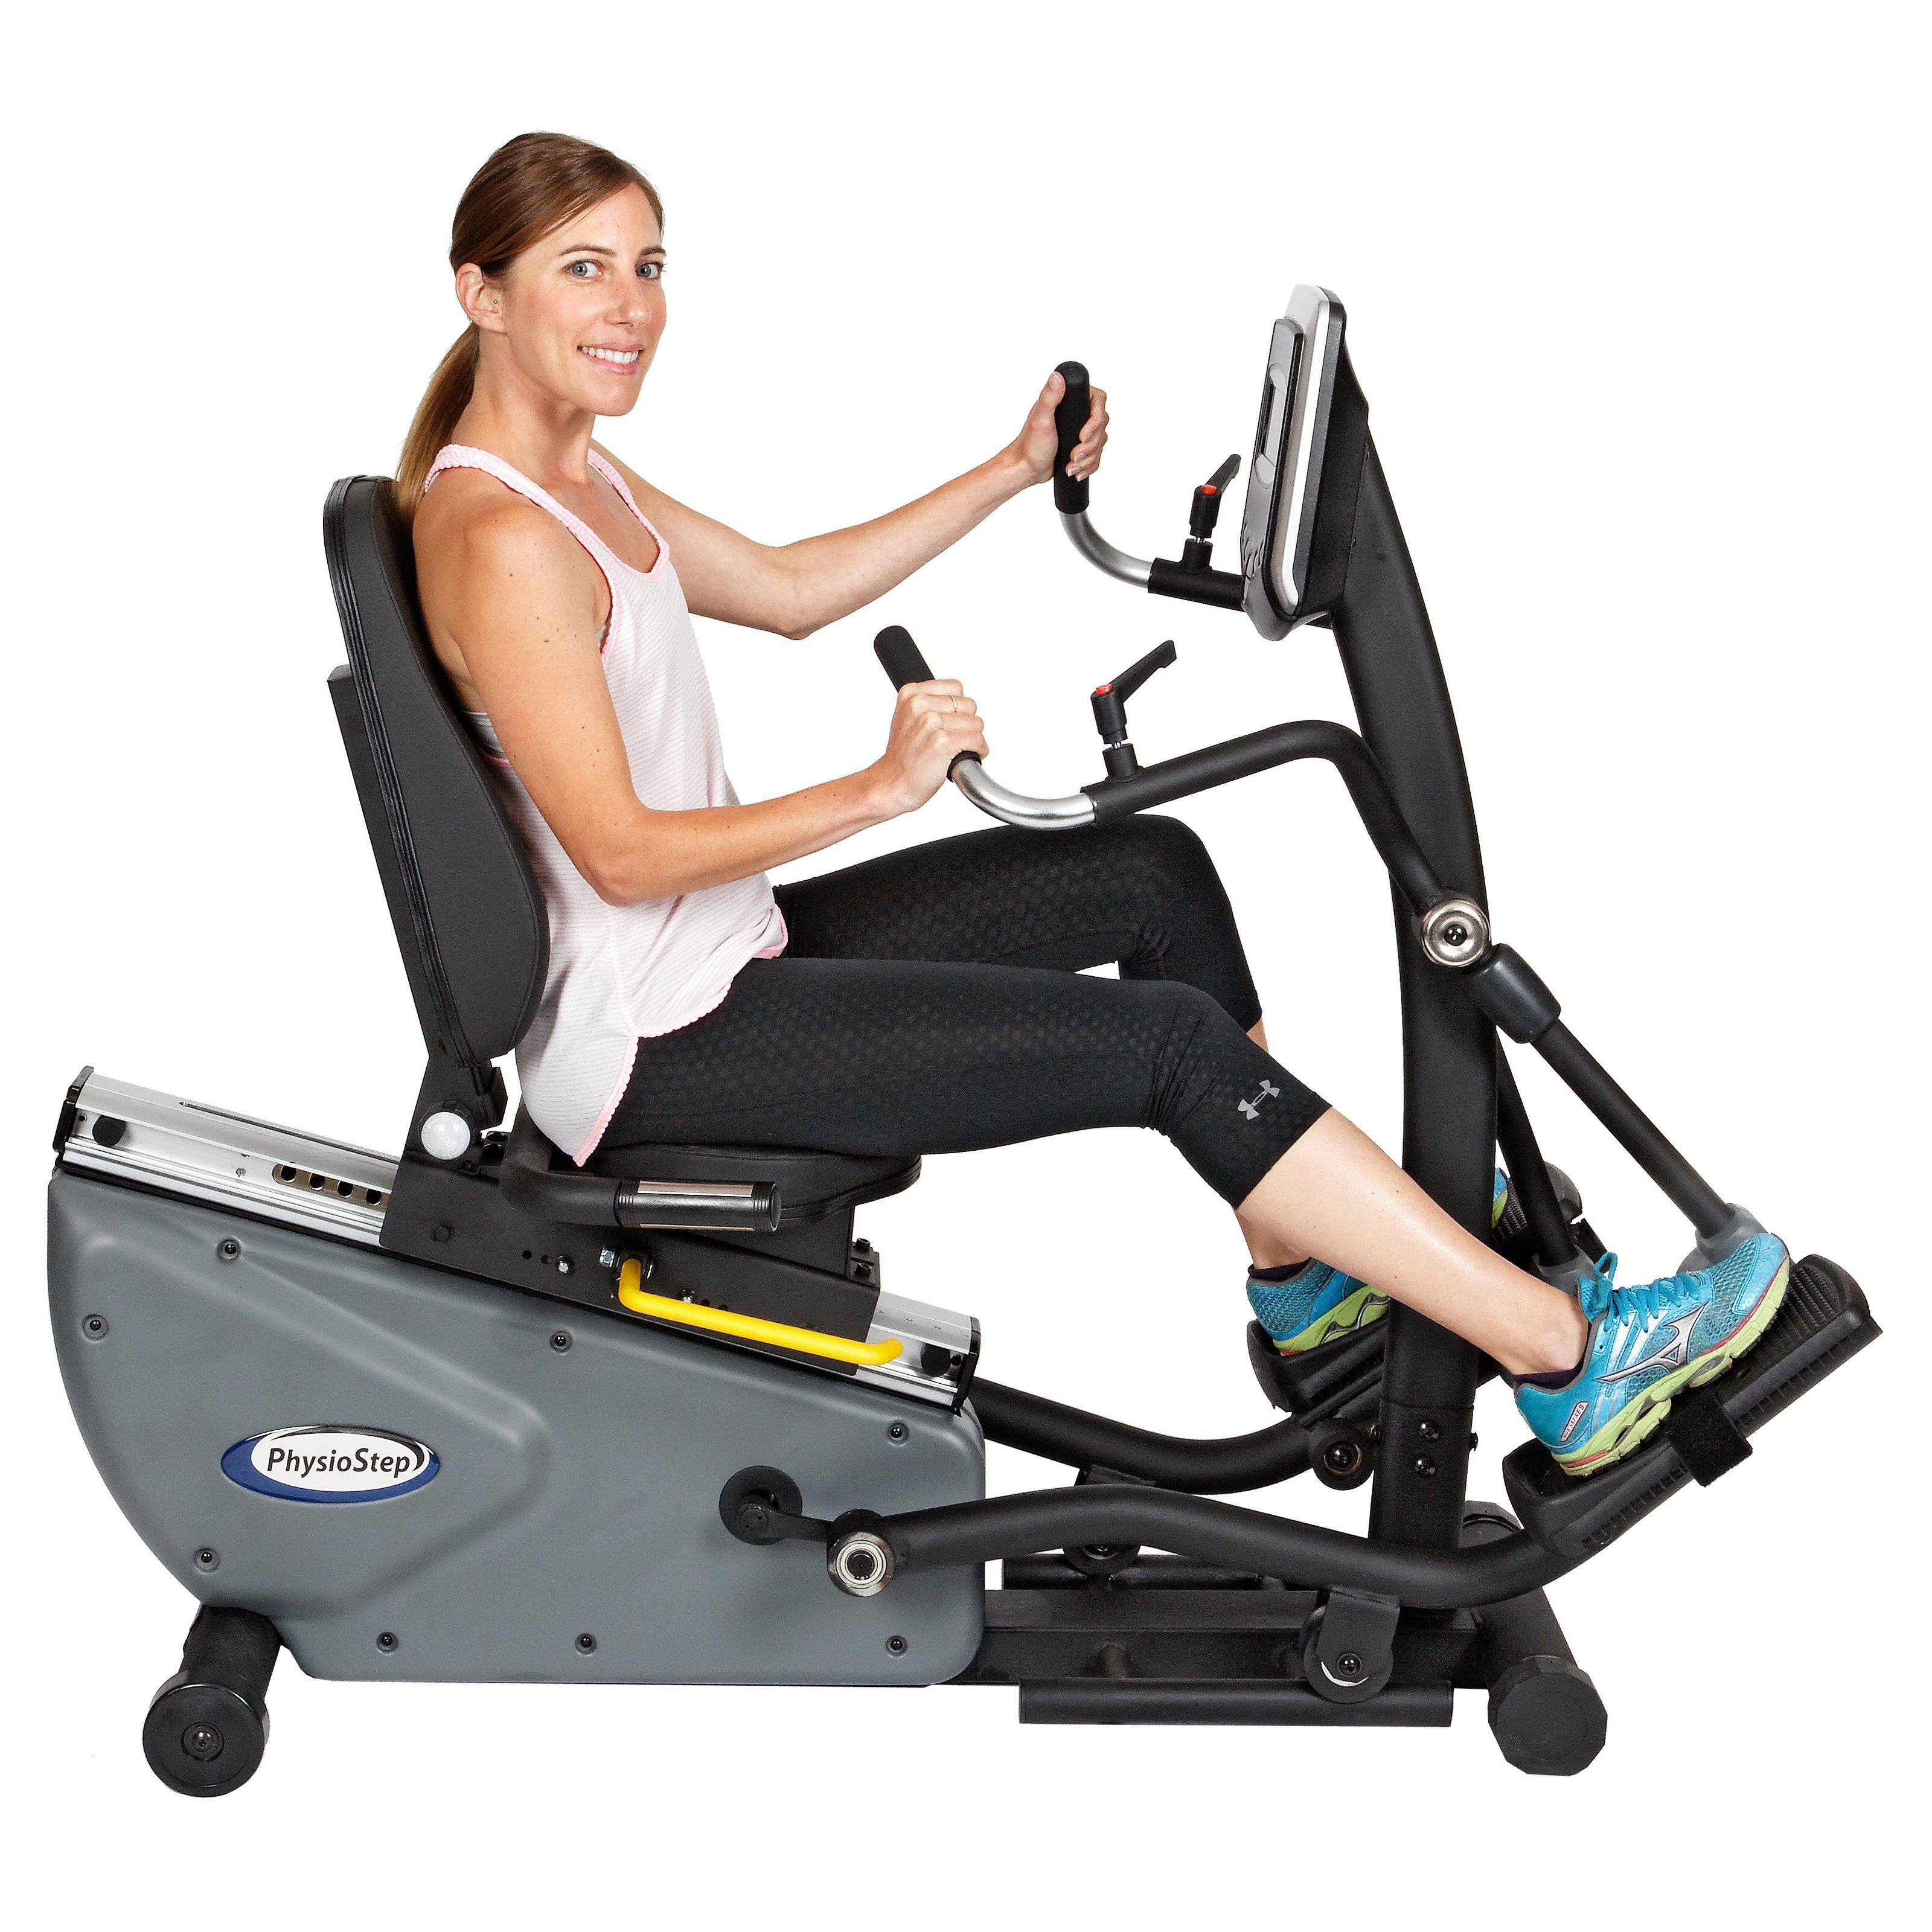 Hci Fitness Rxt 300 Physiostep Hxt Recumbent Semi Elliptical From Hayneedle Com Elliptical Cross Trainer No Equipment Workout Exercise Bikes